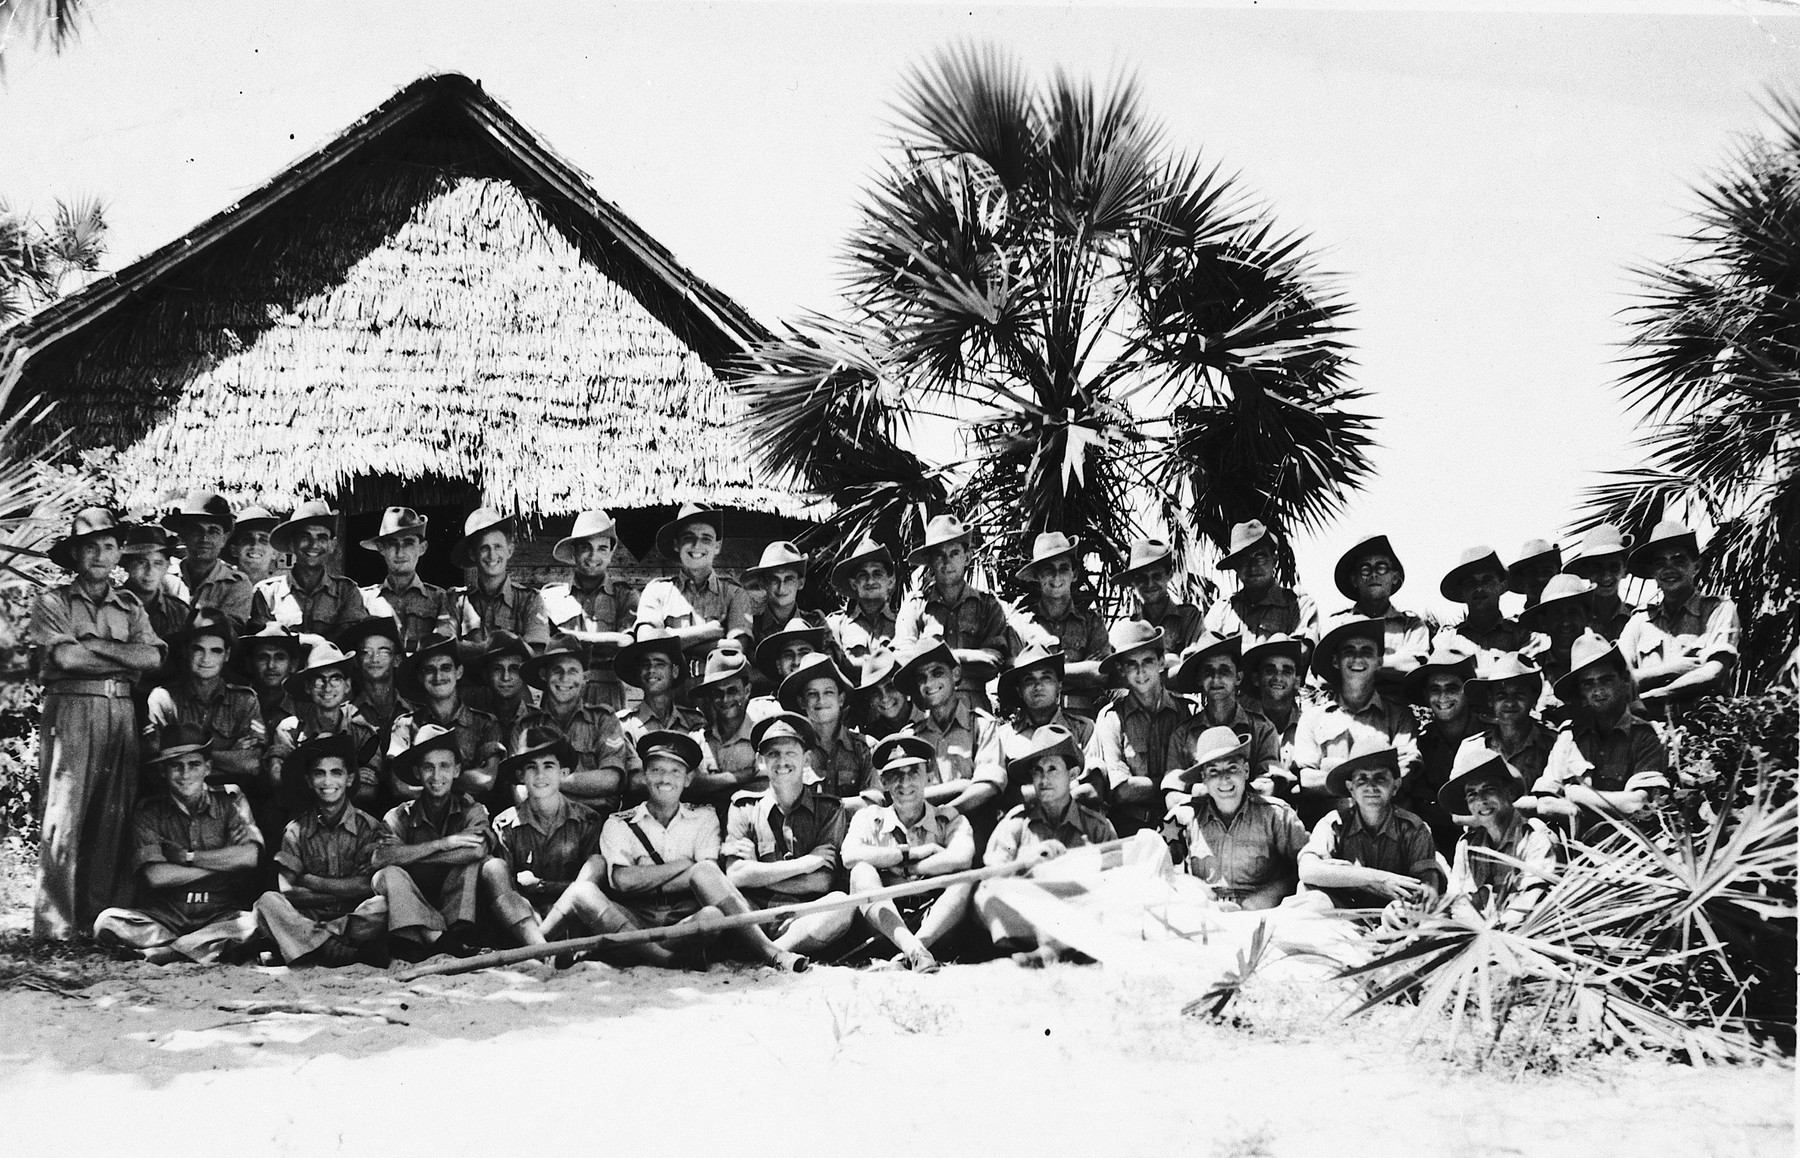 Group portrait of 52 former Jewish internees of Mauritius in an army unit in Mombasa, Kenya.  They would later officially become part of the Jewish Brigade.  Among those pictured are Hersh Makowski, Werner Szerevski, Heinrich Wellisch, Eric Gross and Israel Makowski.